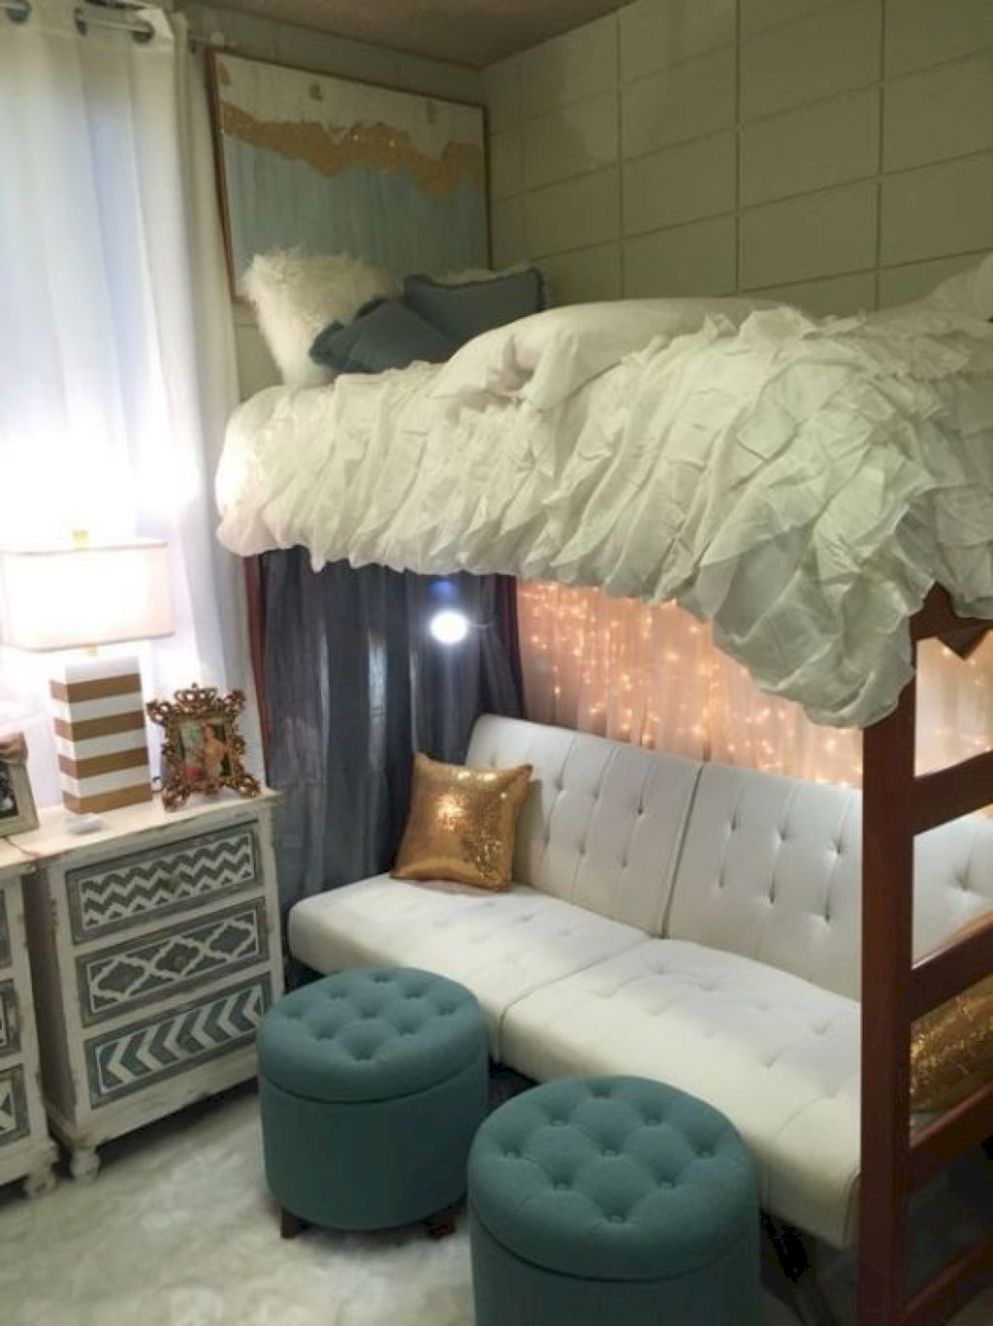 Pin by spicey bananas on décor | Dorm room designs, Cute dorm ...